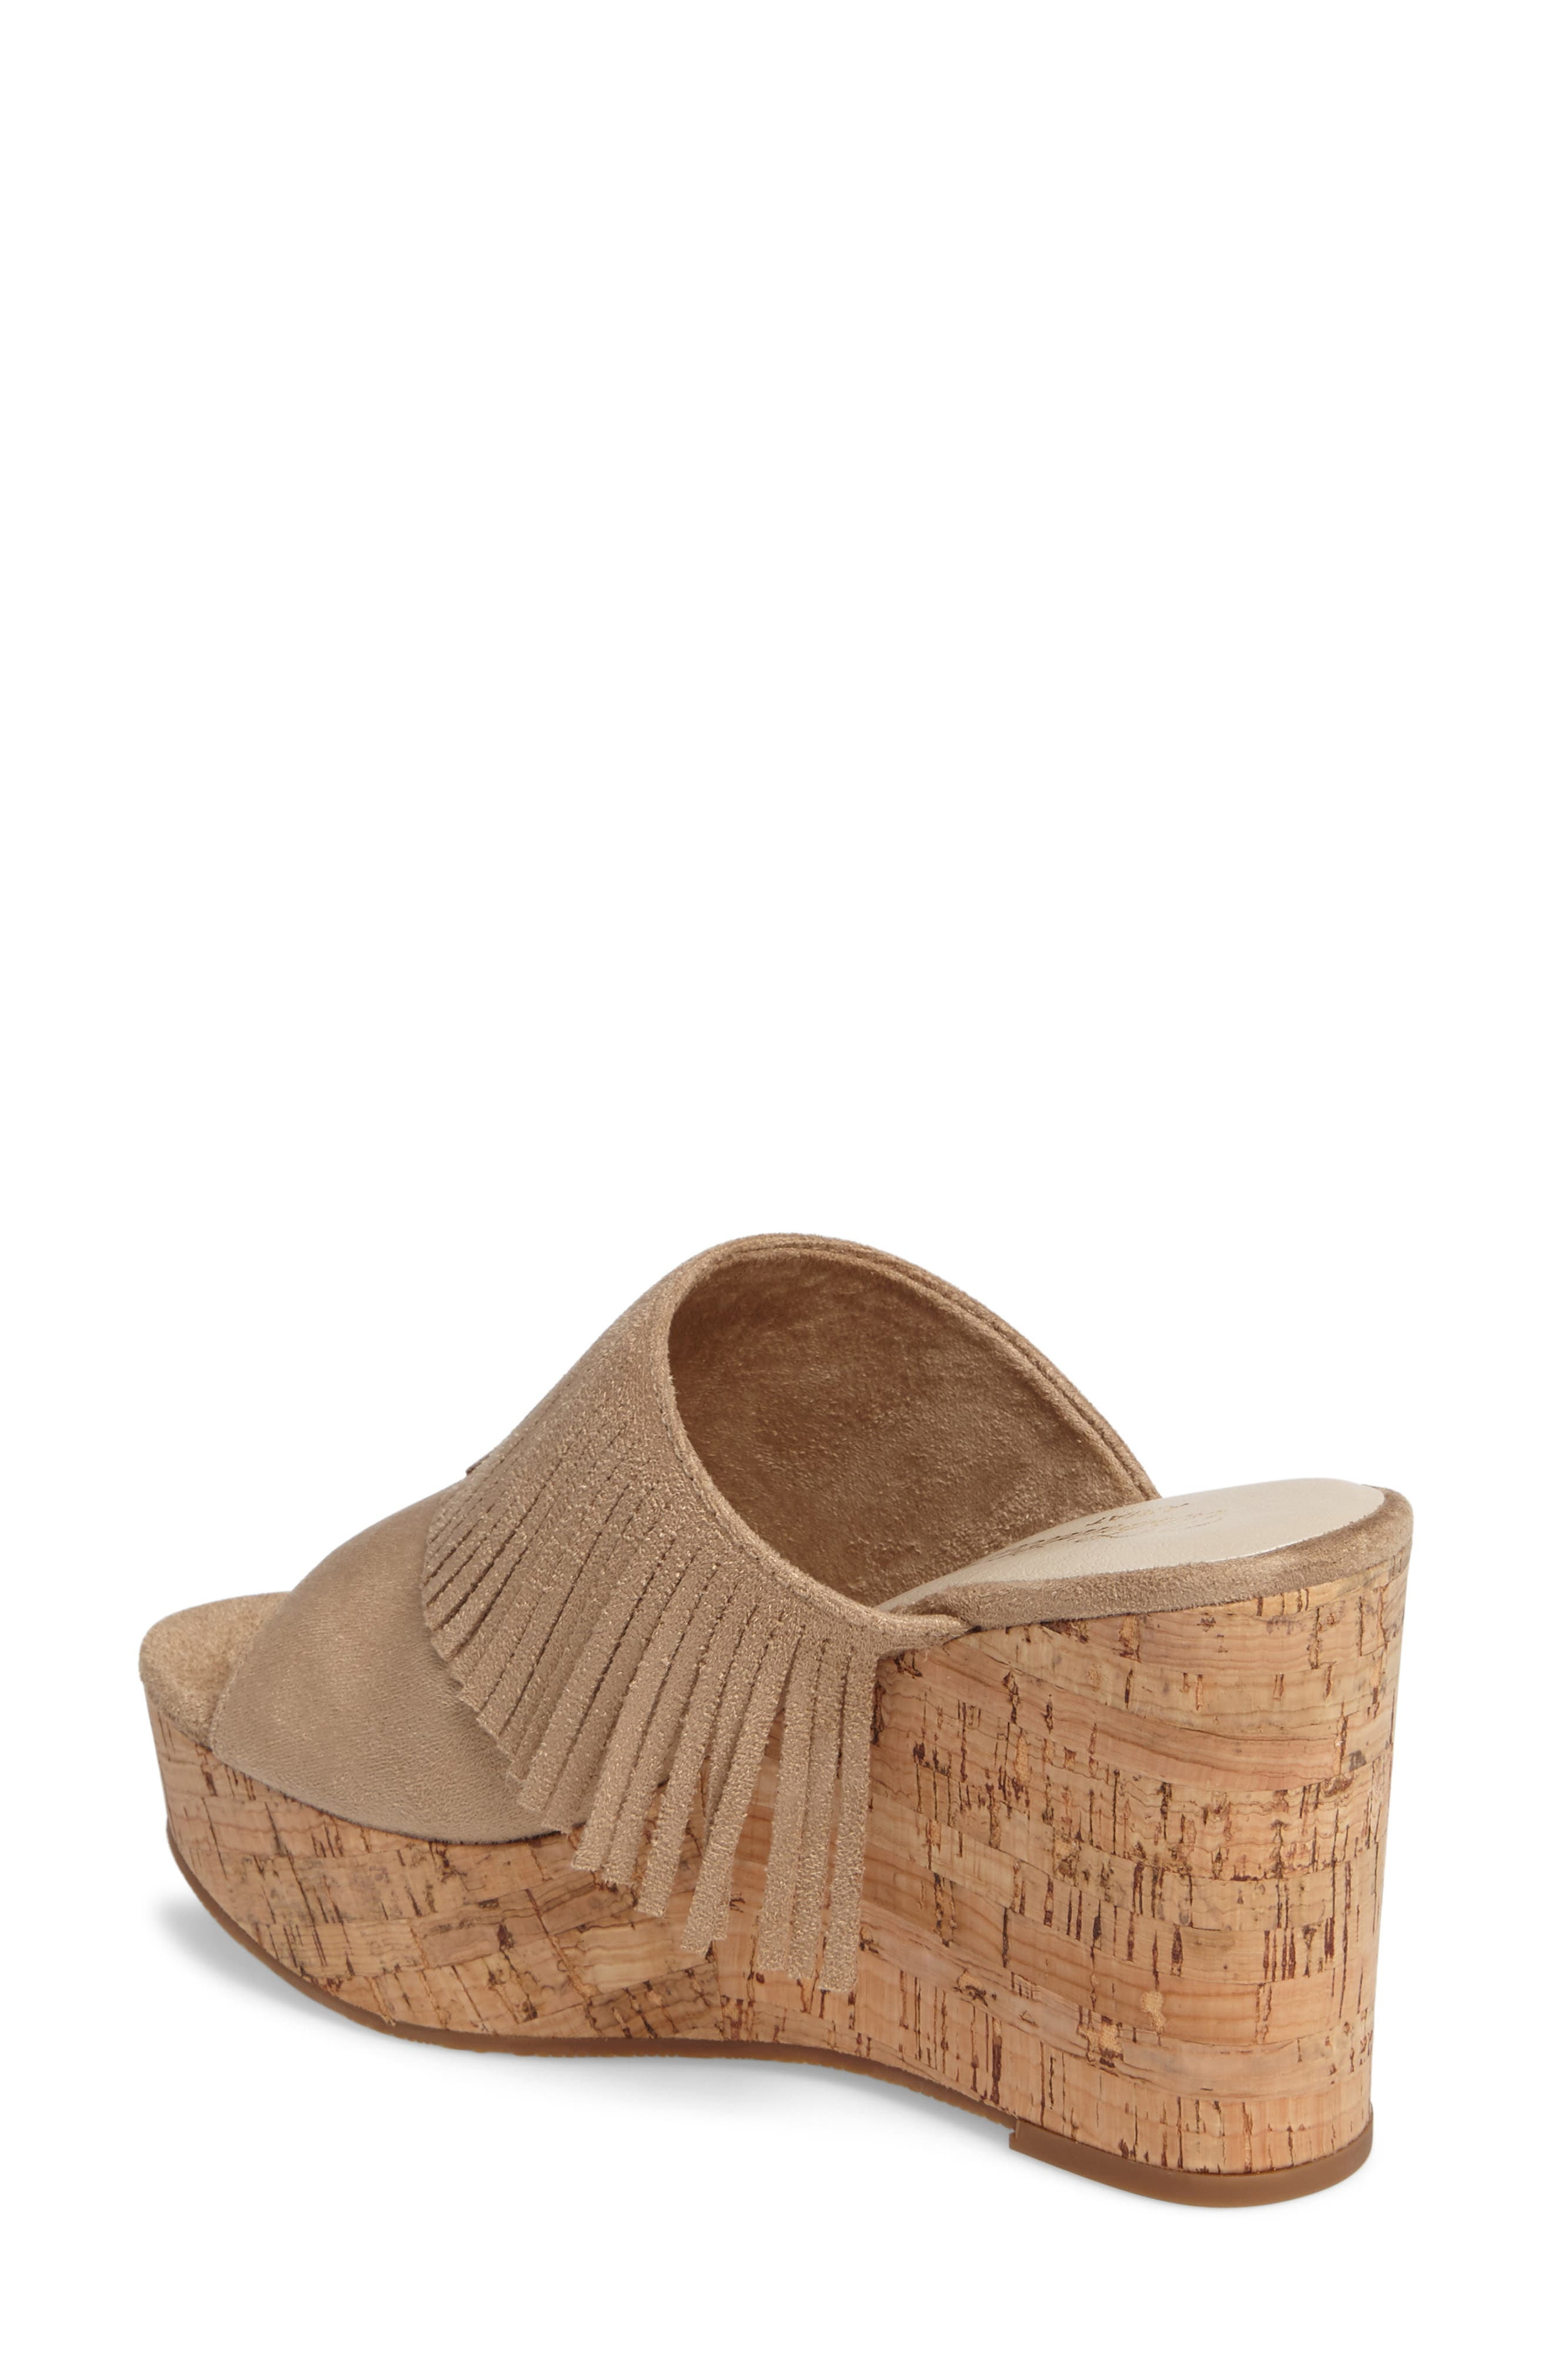 Unbridled Leigh Fringe Mule,                             Alternate thumbnail 2, color,                             Sand Fabric